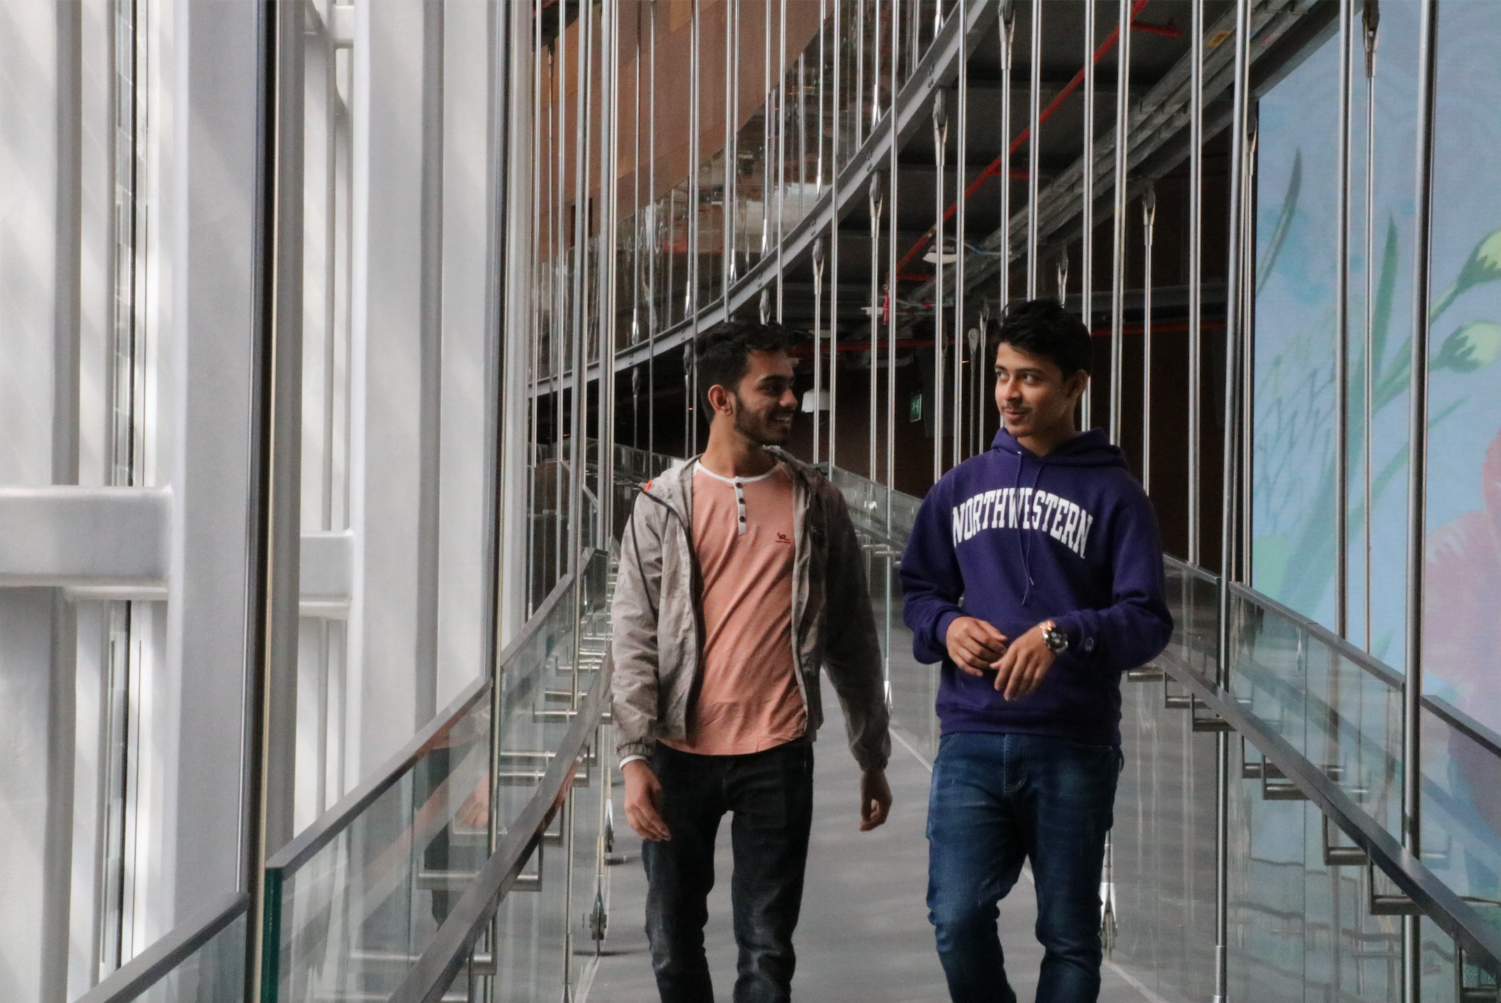 Bishal and Krishna Sharma, both freshmen at Northwestern University in Qatar, were affected by the scholarship withdrawal from the University of Texas at Tyler. Photo by Adrian Wan.